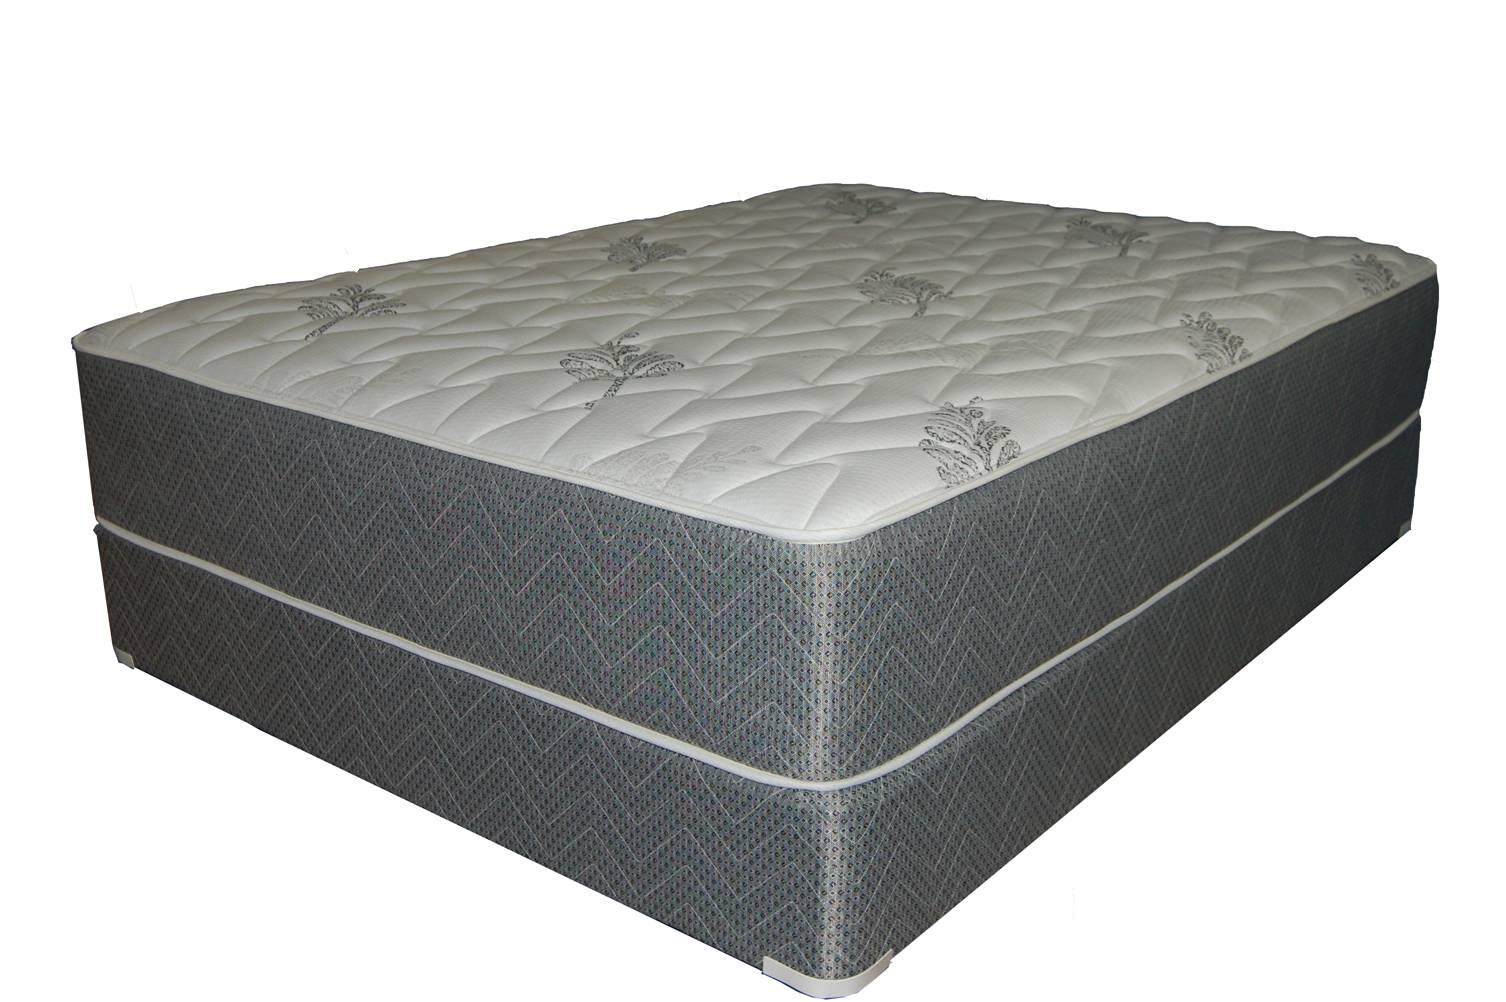 Mattress Firm Prices Cheap Prices Sales Wholesale Better Sleep Pocket Spring Mattress Firm